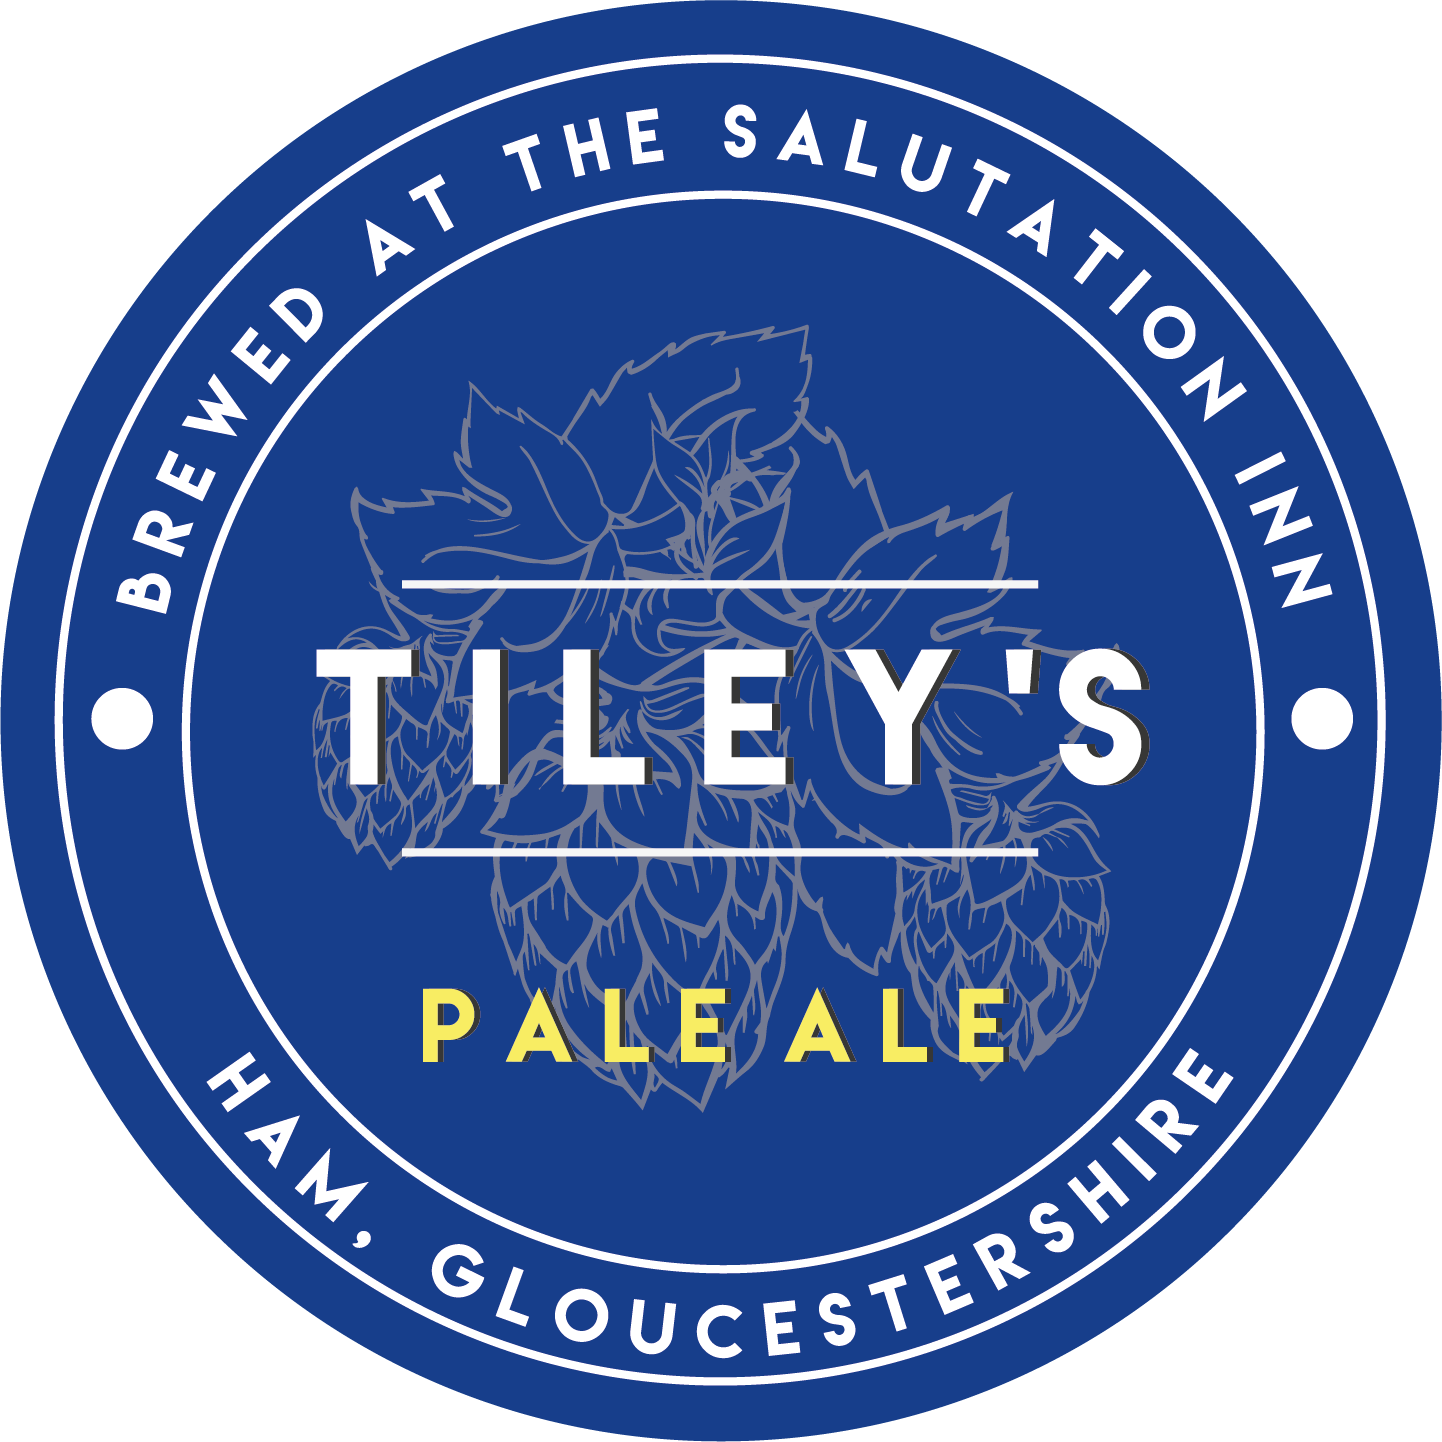 Tiley's Eukanot Loral Simcoe Pale Ale 4.6% Bag-in-Box